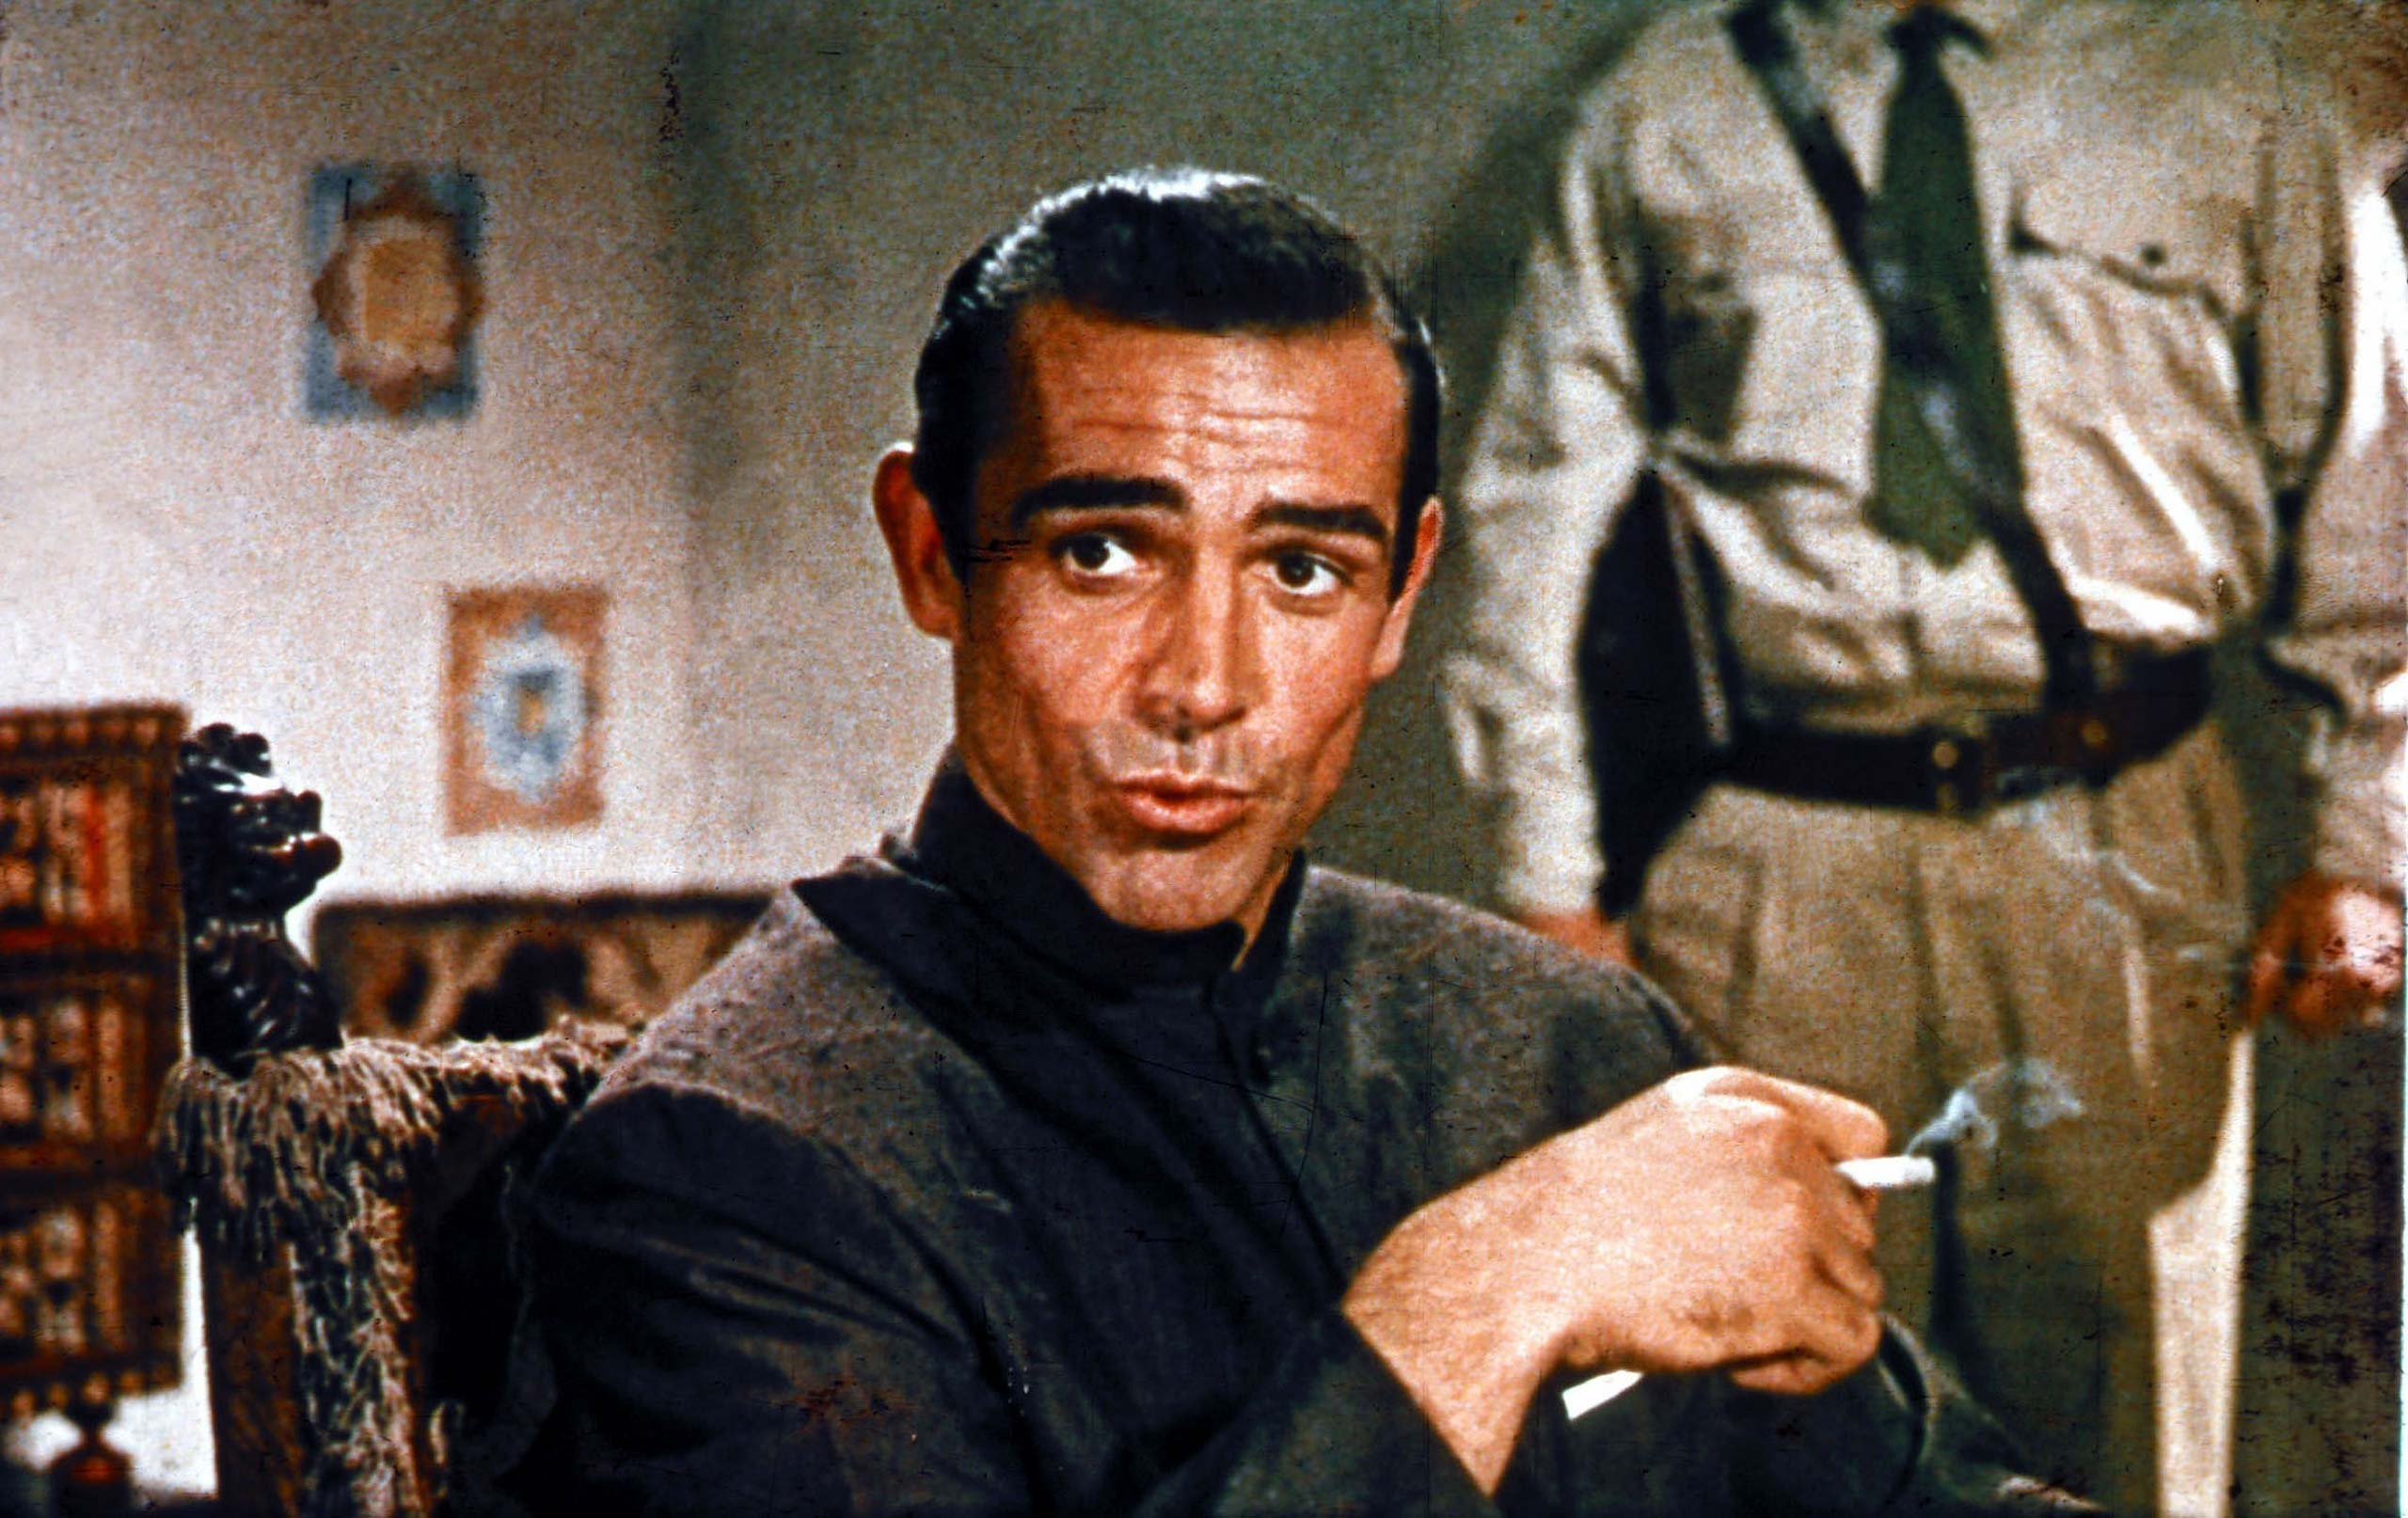 <strong><i>Dr. No</i> (1962) - Sean Connery</strong>